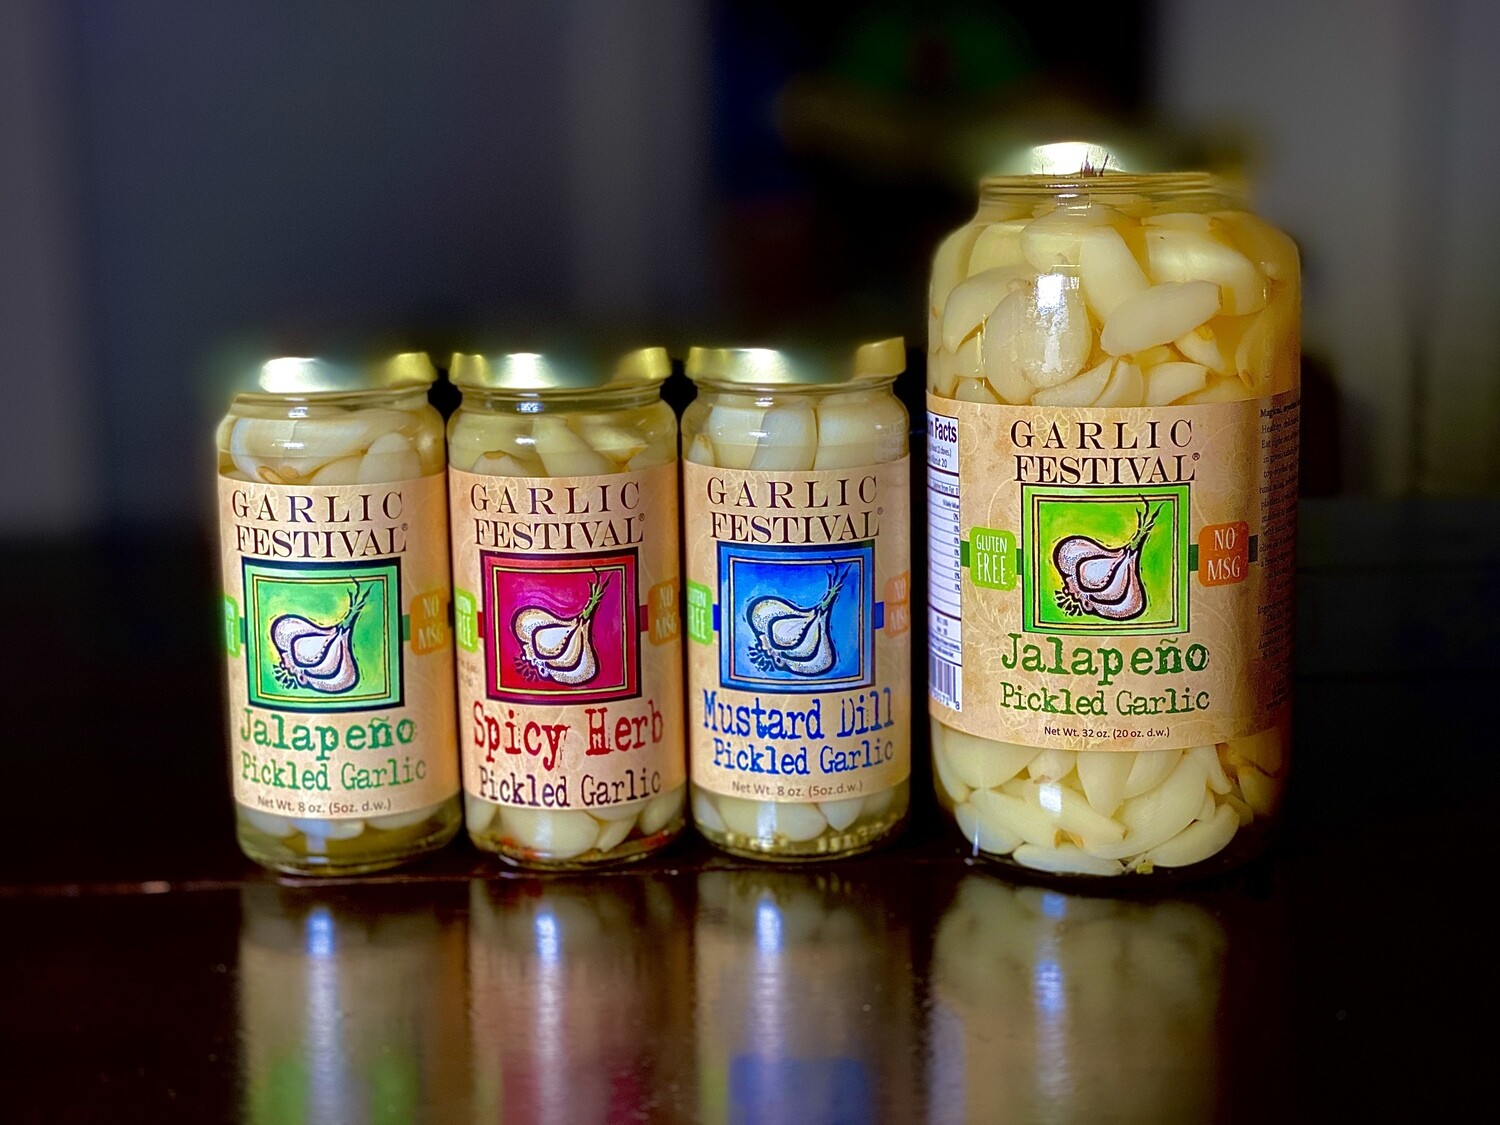 Pickled Garlic Combo #1 - $5 OFF at checkout or FREE SHIPPING. See the note in the Description.